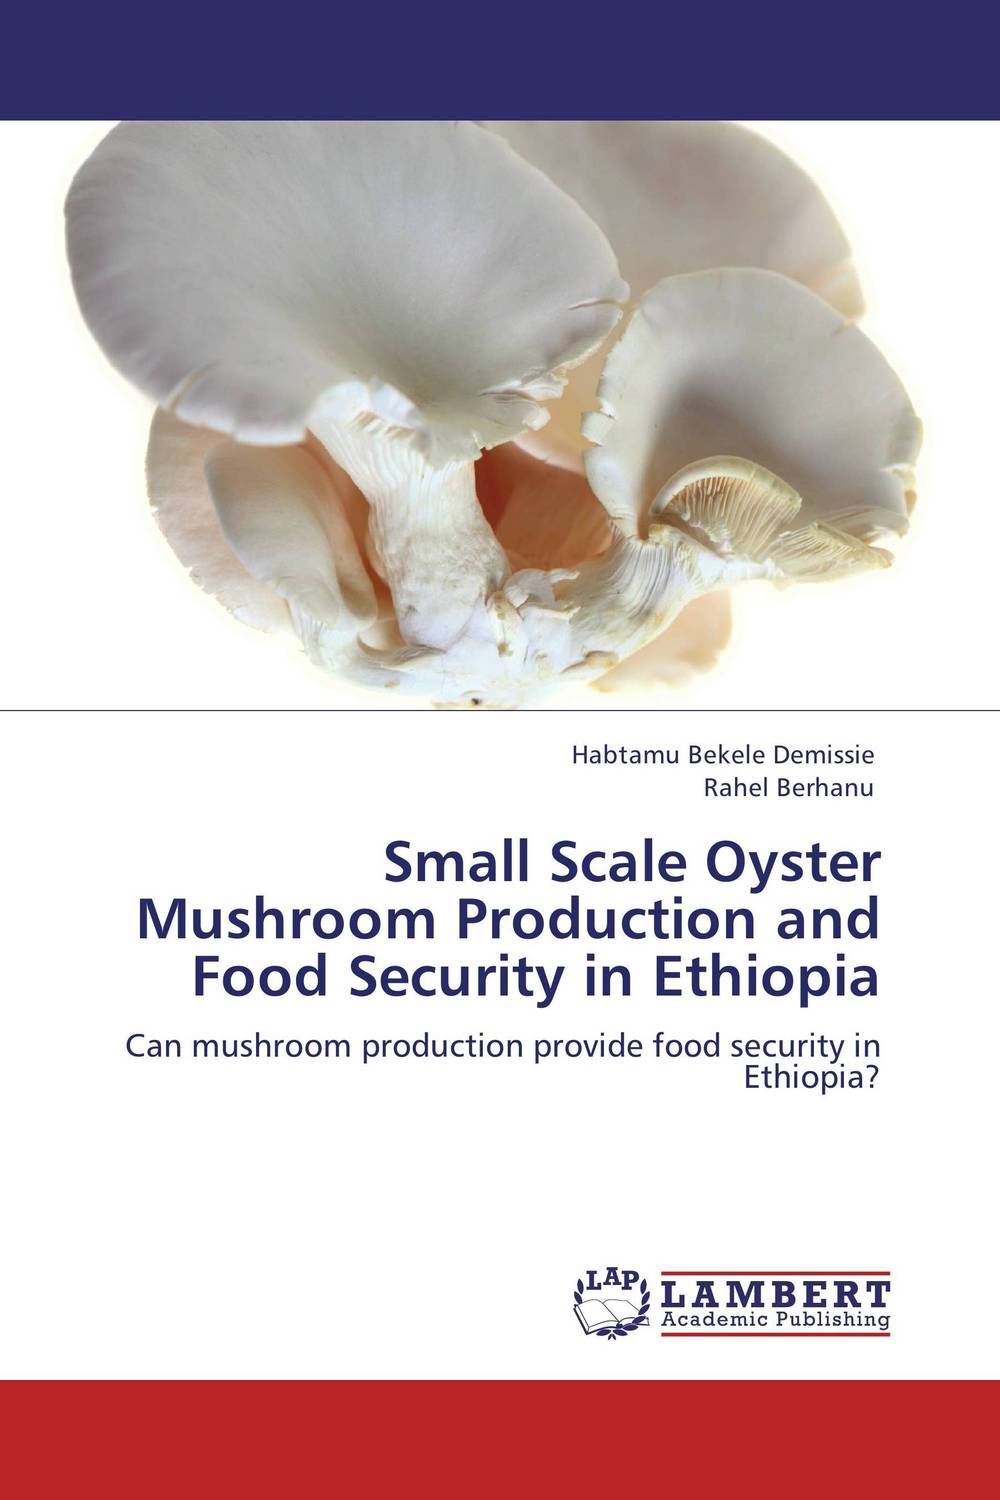 Small Scale Oyster Mushroom Production and Food Security in Ethiopia tuarira mtaita and itai mutukwa mushroom a crop of choice